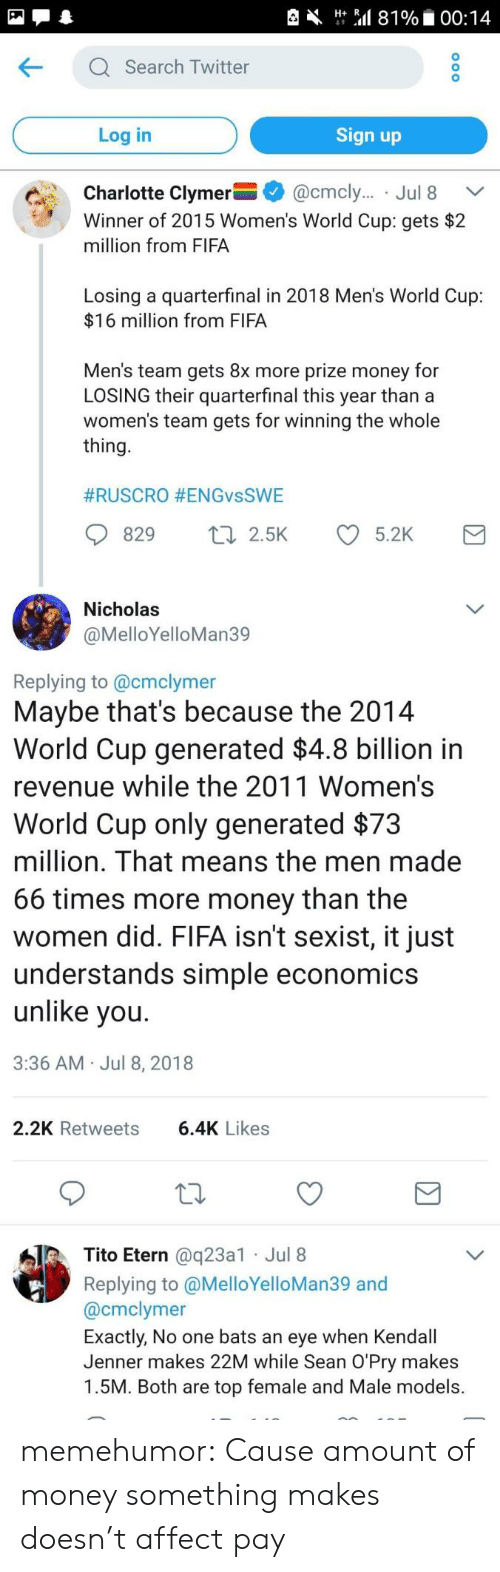 Fifa, Kendall Jenner, and Money: Ht Sal 81%. 00:14  KQ Search Twitter  Log in  Sign up  Charlotte Clymer-+ @cmcly.. . Jul 8  Winner of 2015 Women's World Cup: gets $2  million from FIFA  Ca.  ﹀  Losing a quarterfinal in 2018 Men's World Cup:  $16 million from FIFA  Men's team gets 8x more prize money for  LOSING their quarterfinal this year than a  women's team gets for winning the whole  thing  #RUSCRO #ENGvsSWE  829 t 2.5K 5.2K  Nicholas  @MelloYelloMan39  Replying to @cmclymer  Maybe that's because the 2014  World Cup generated $4.8 billion in  revenue while the 2011 Women's  World Cup only generated $73  million. That means the men made  66 times more money than the  women did. FIFA isn't sexist, it just  understands simple economics  unlike vou  3:36 AM Jul 8, 2018  2.2K Retweets  6.4K Likes  Tito Etern @q23a1 Jul 8  Replying to @MelloYelloMan39 and  @cmclymer  Exactly, No one bats an eye when Kendall  Jenner makes 22M while Sean O'Pry makes  1.5M. Both are top female and Male models. memehumor:  Cause amount of money something makes doesn't affect pay